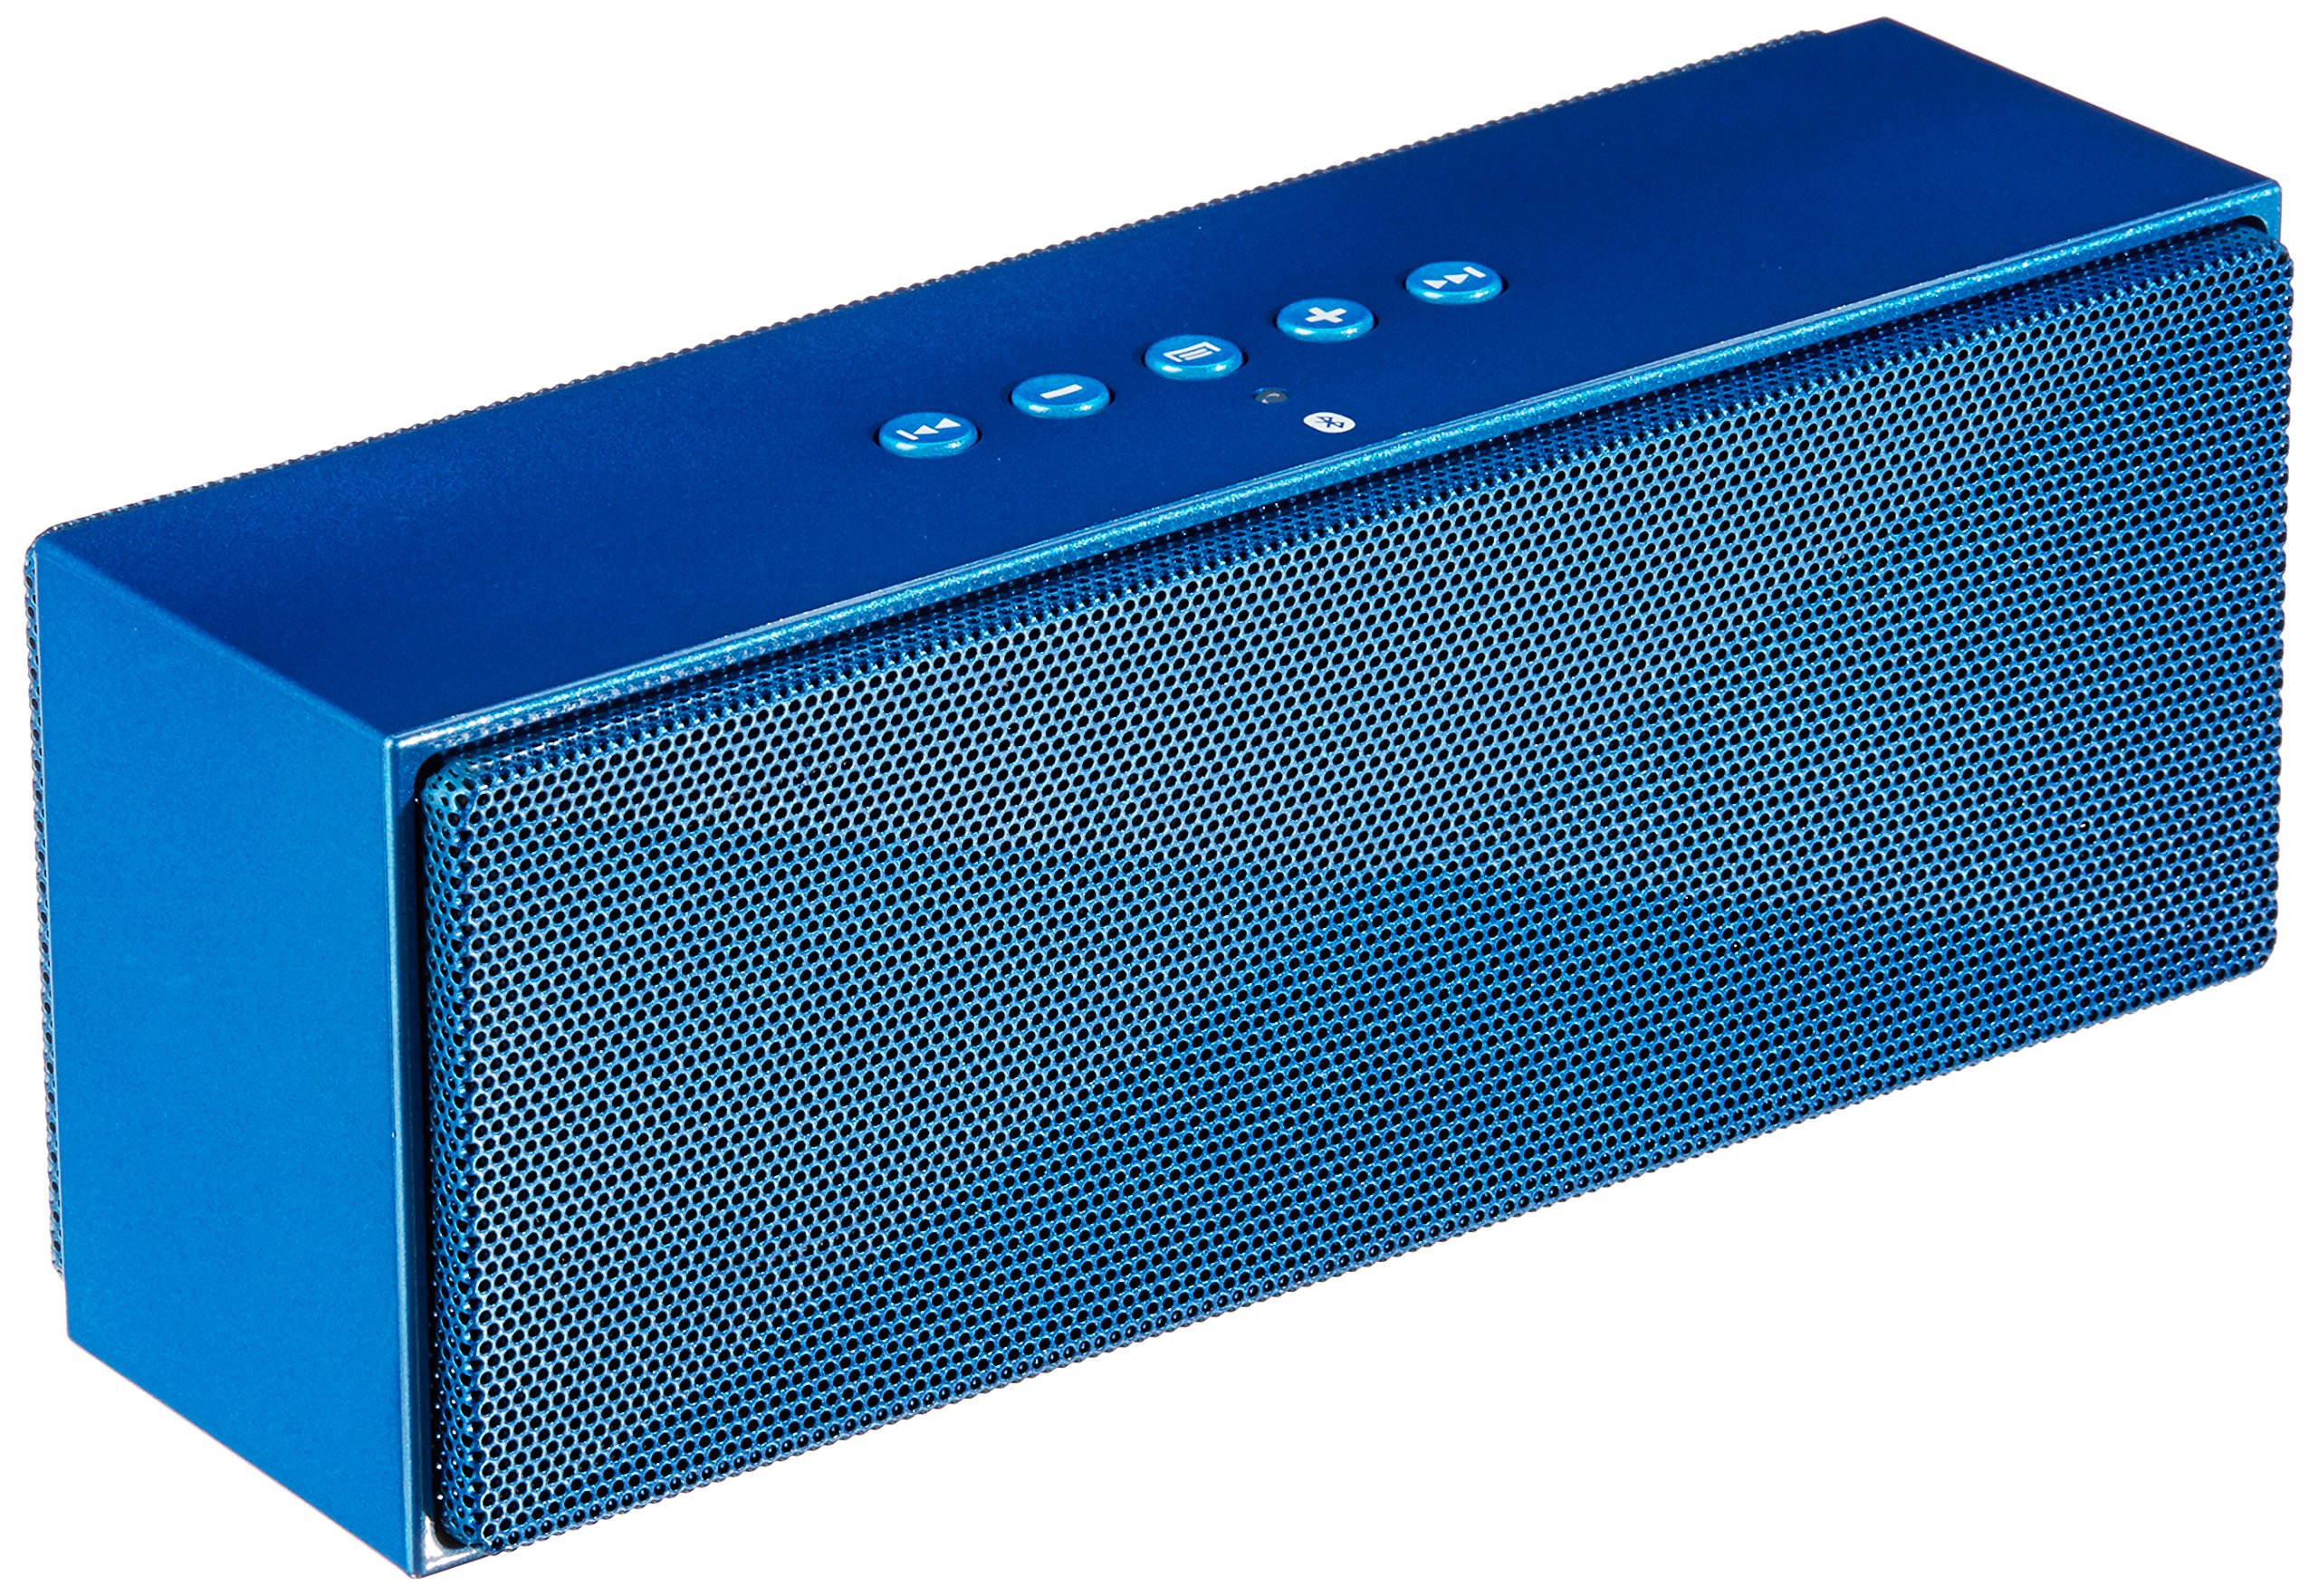 AmazonBasics Wireless Bluetooth Dual 3W Speaker with Built-in Microphone - Blue